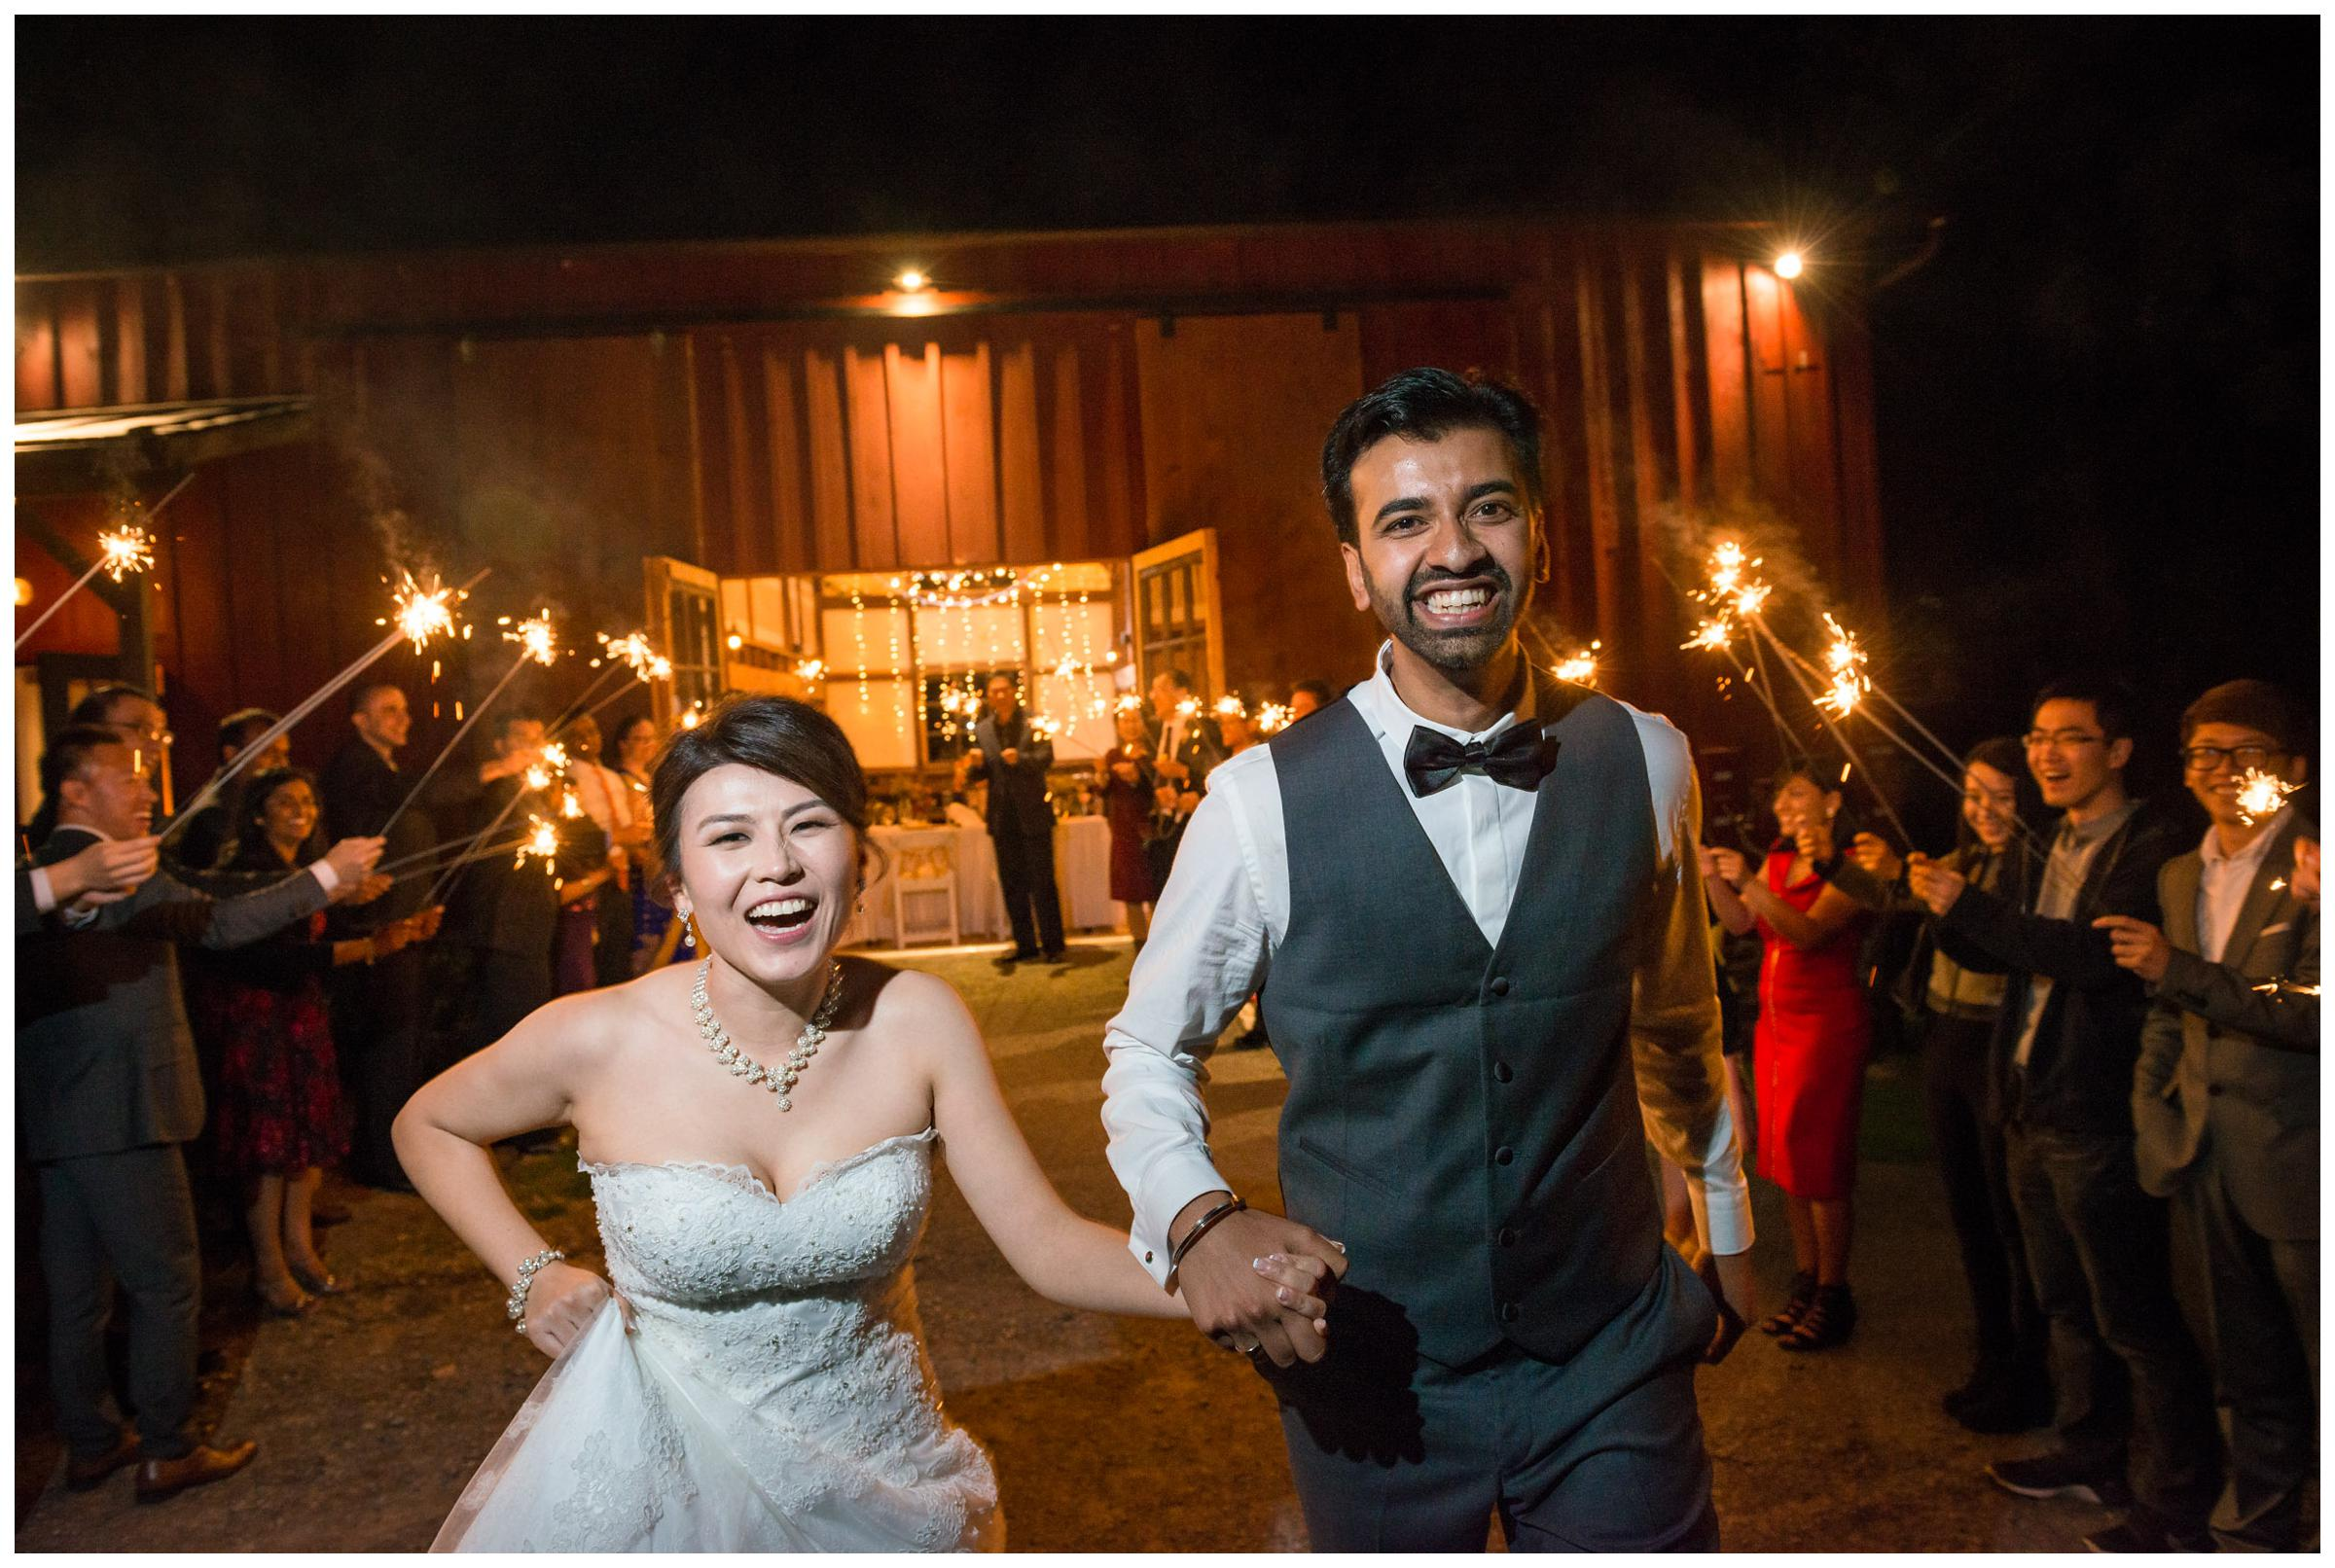 Bride and groom during sparkler wedding reception exit in rustic barn.